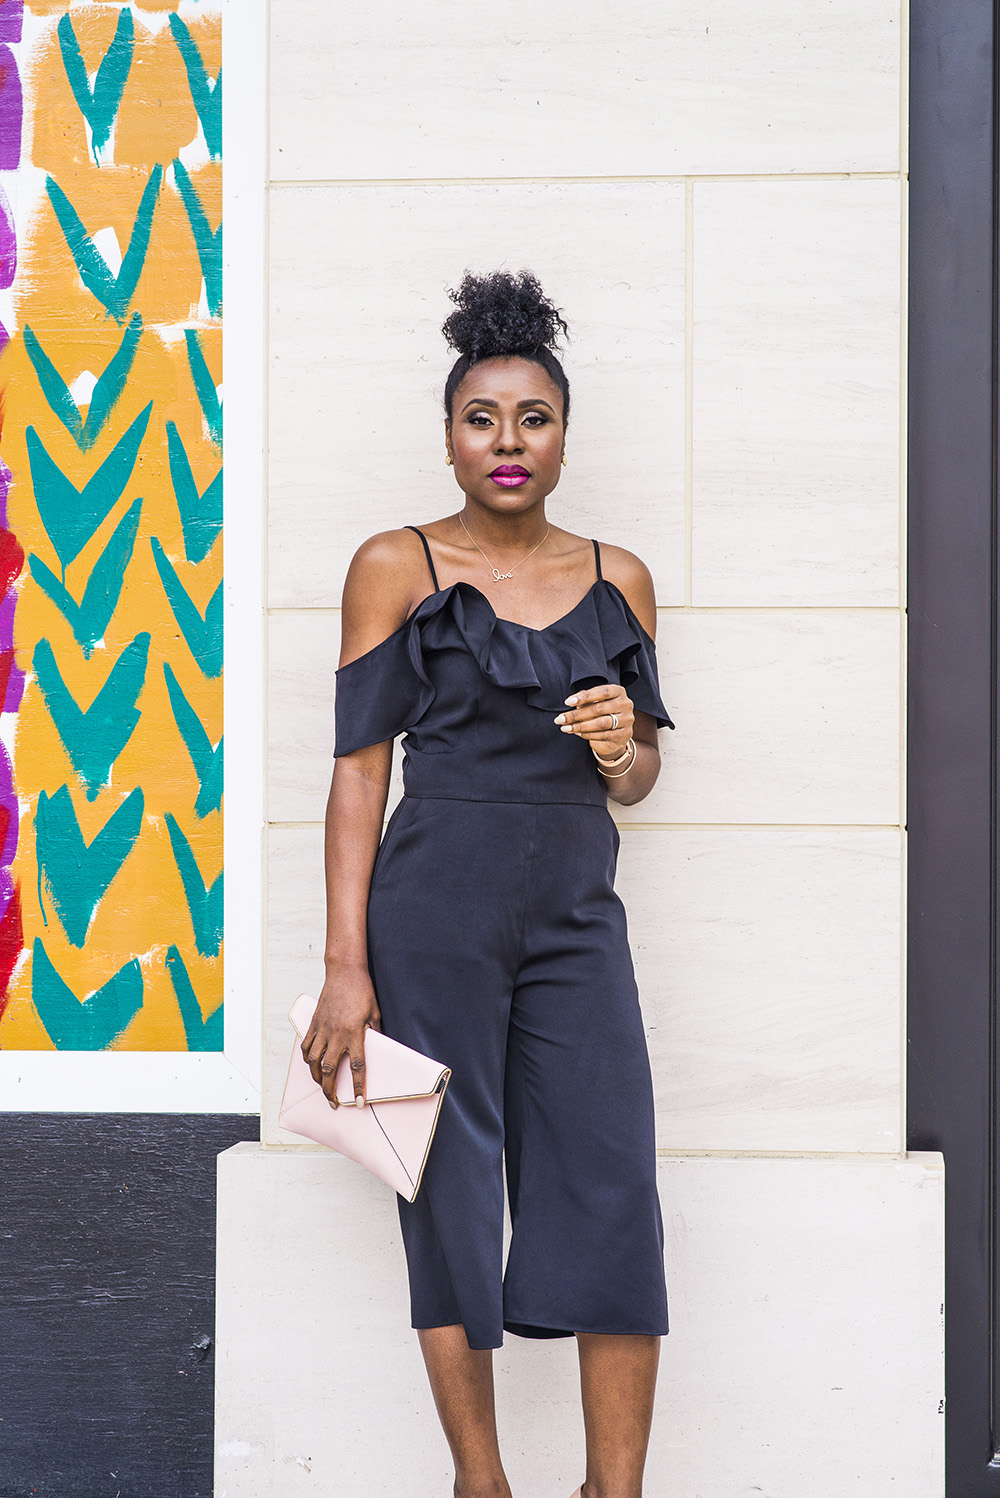 045e62f4b246 Jumpsuit by Vernacular Boutique - Titi s Passion